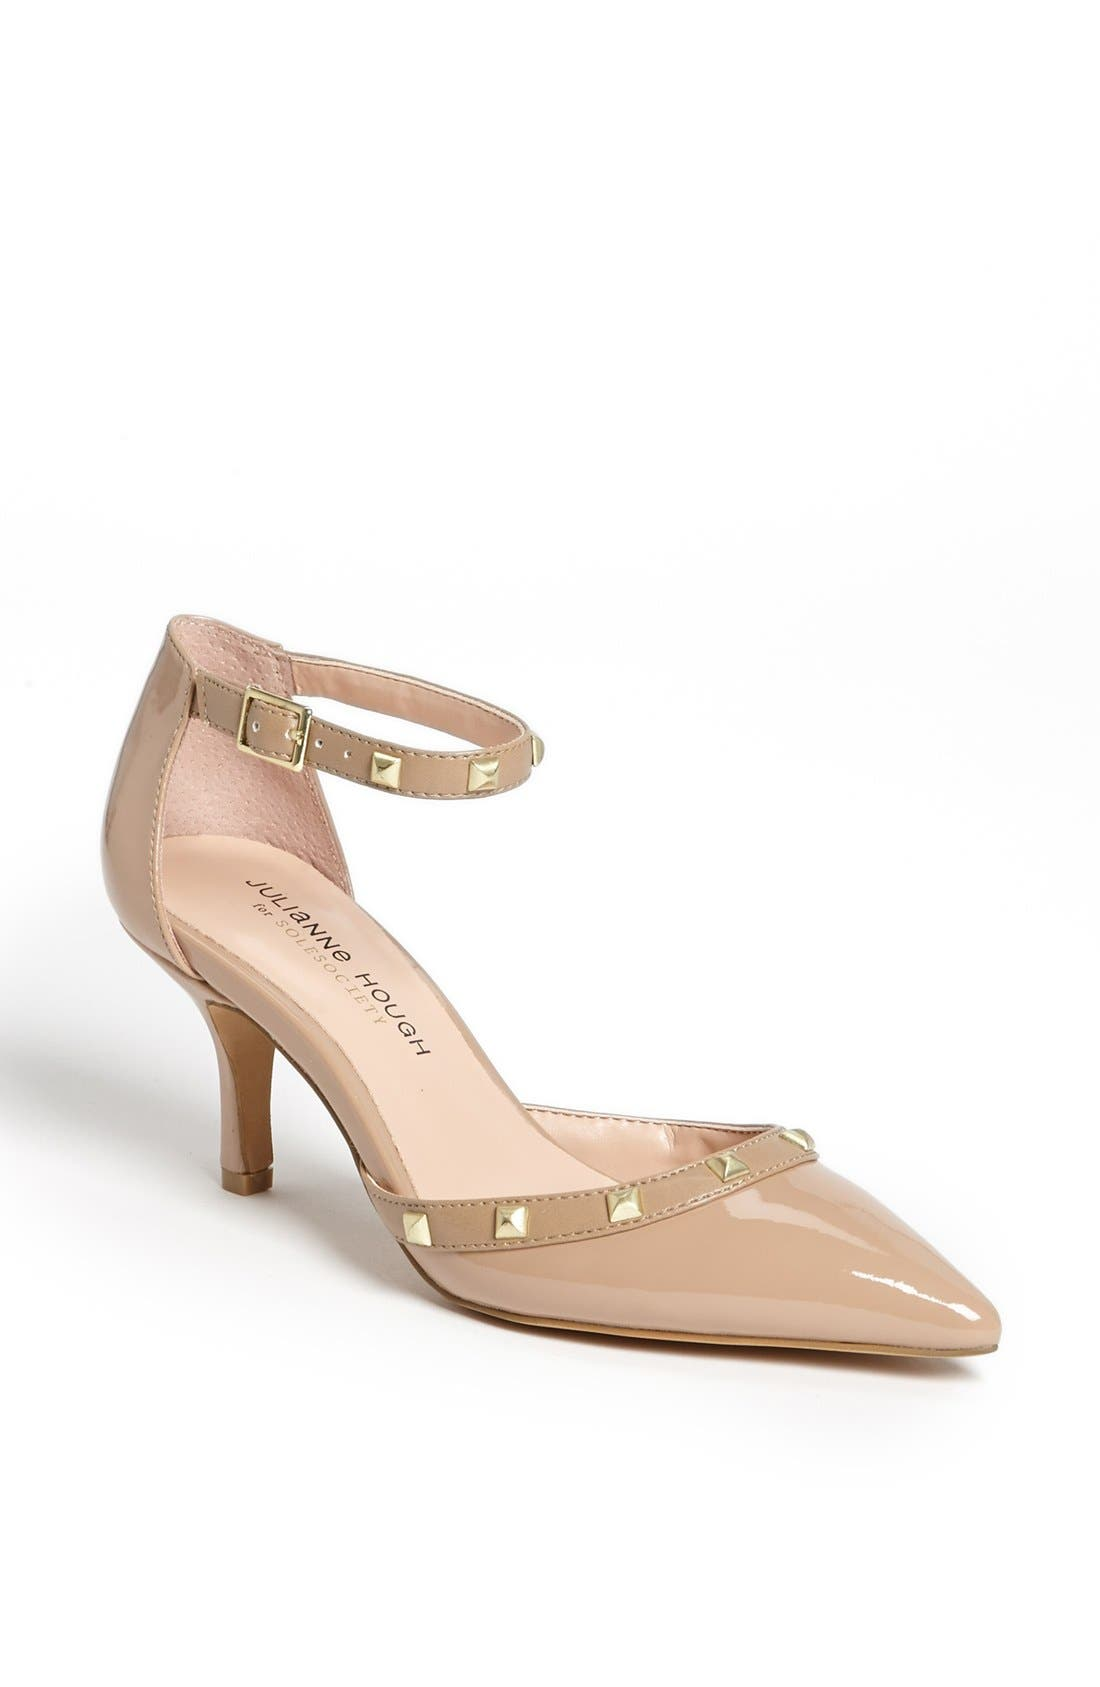 Main Image - Julianne Hough for Sole Society 'Anneke' Pump